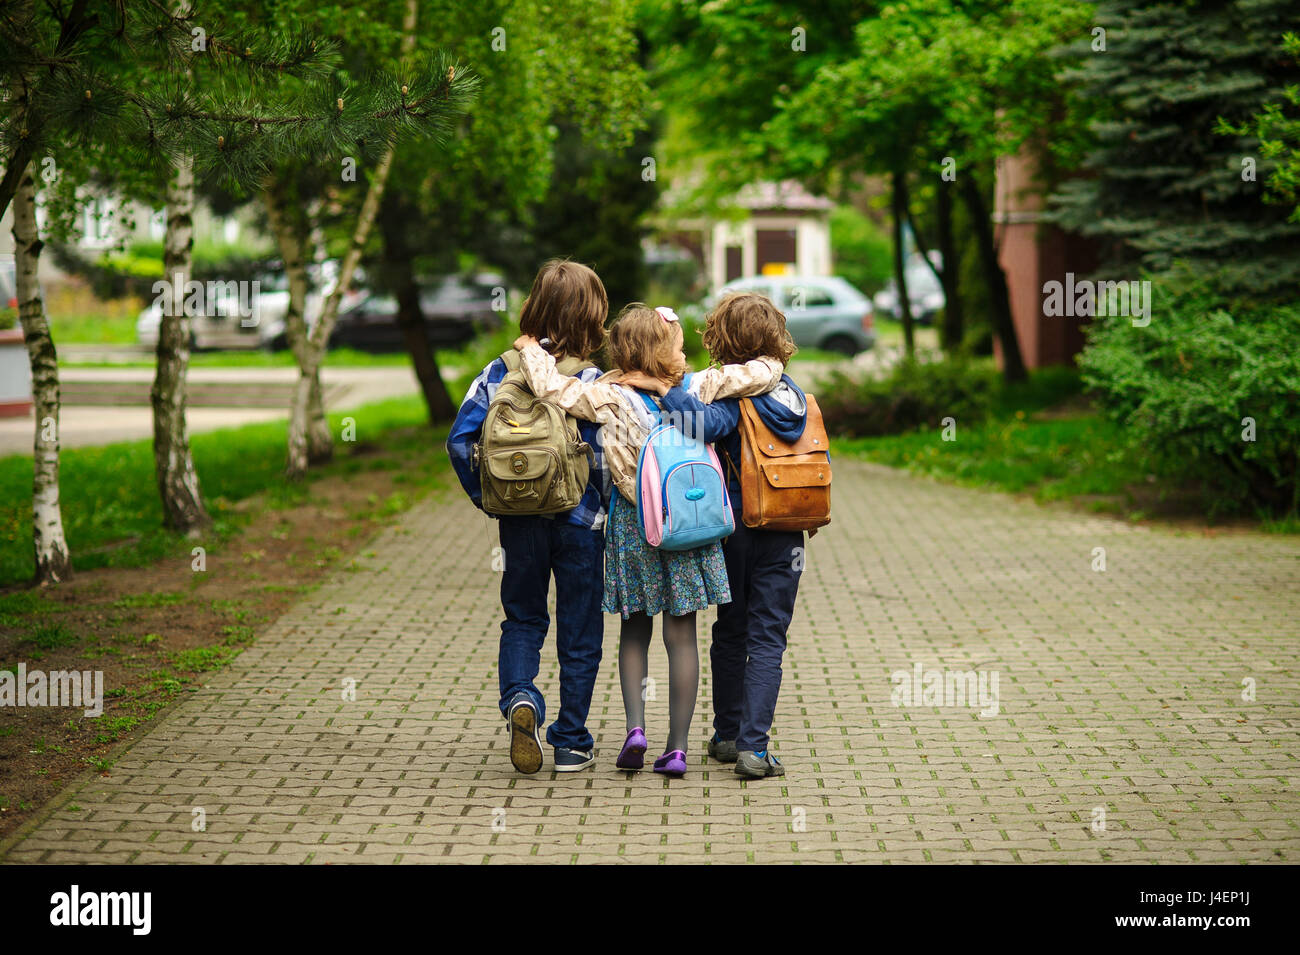 Three little school students, two boys and the girl, go in an embrace to school. Children's friendship. Serene - Stock Image